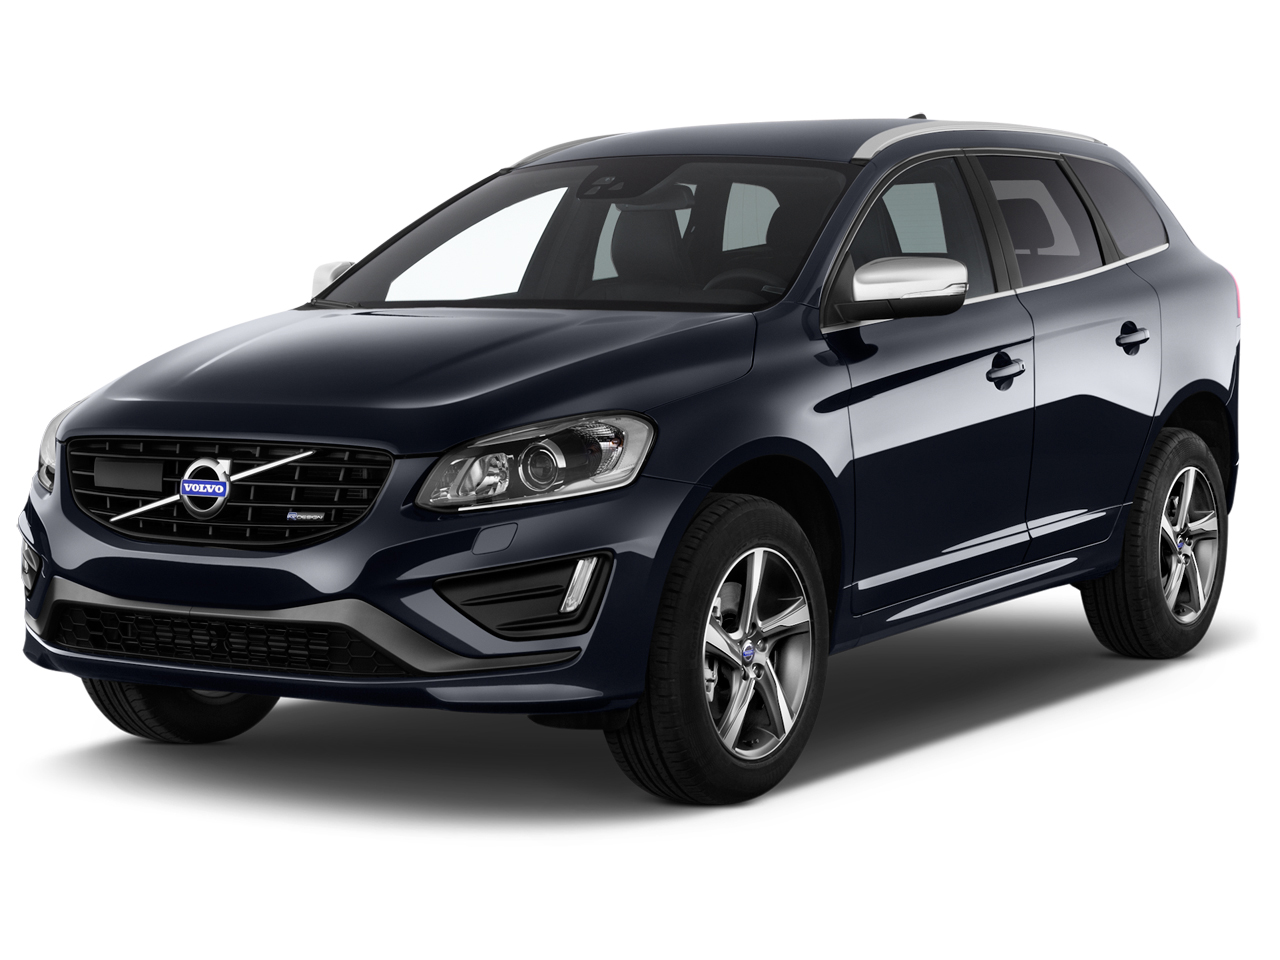 2016 Volvo XC60 Gas Mileage - The Car Connection